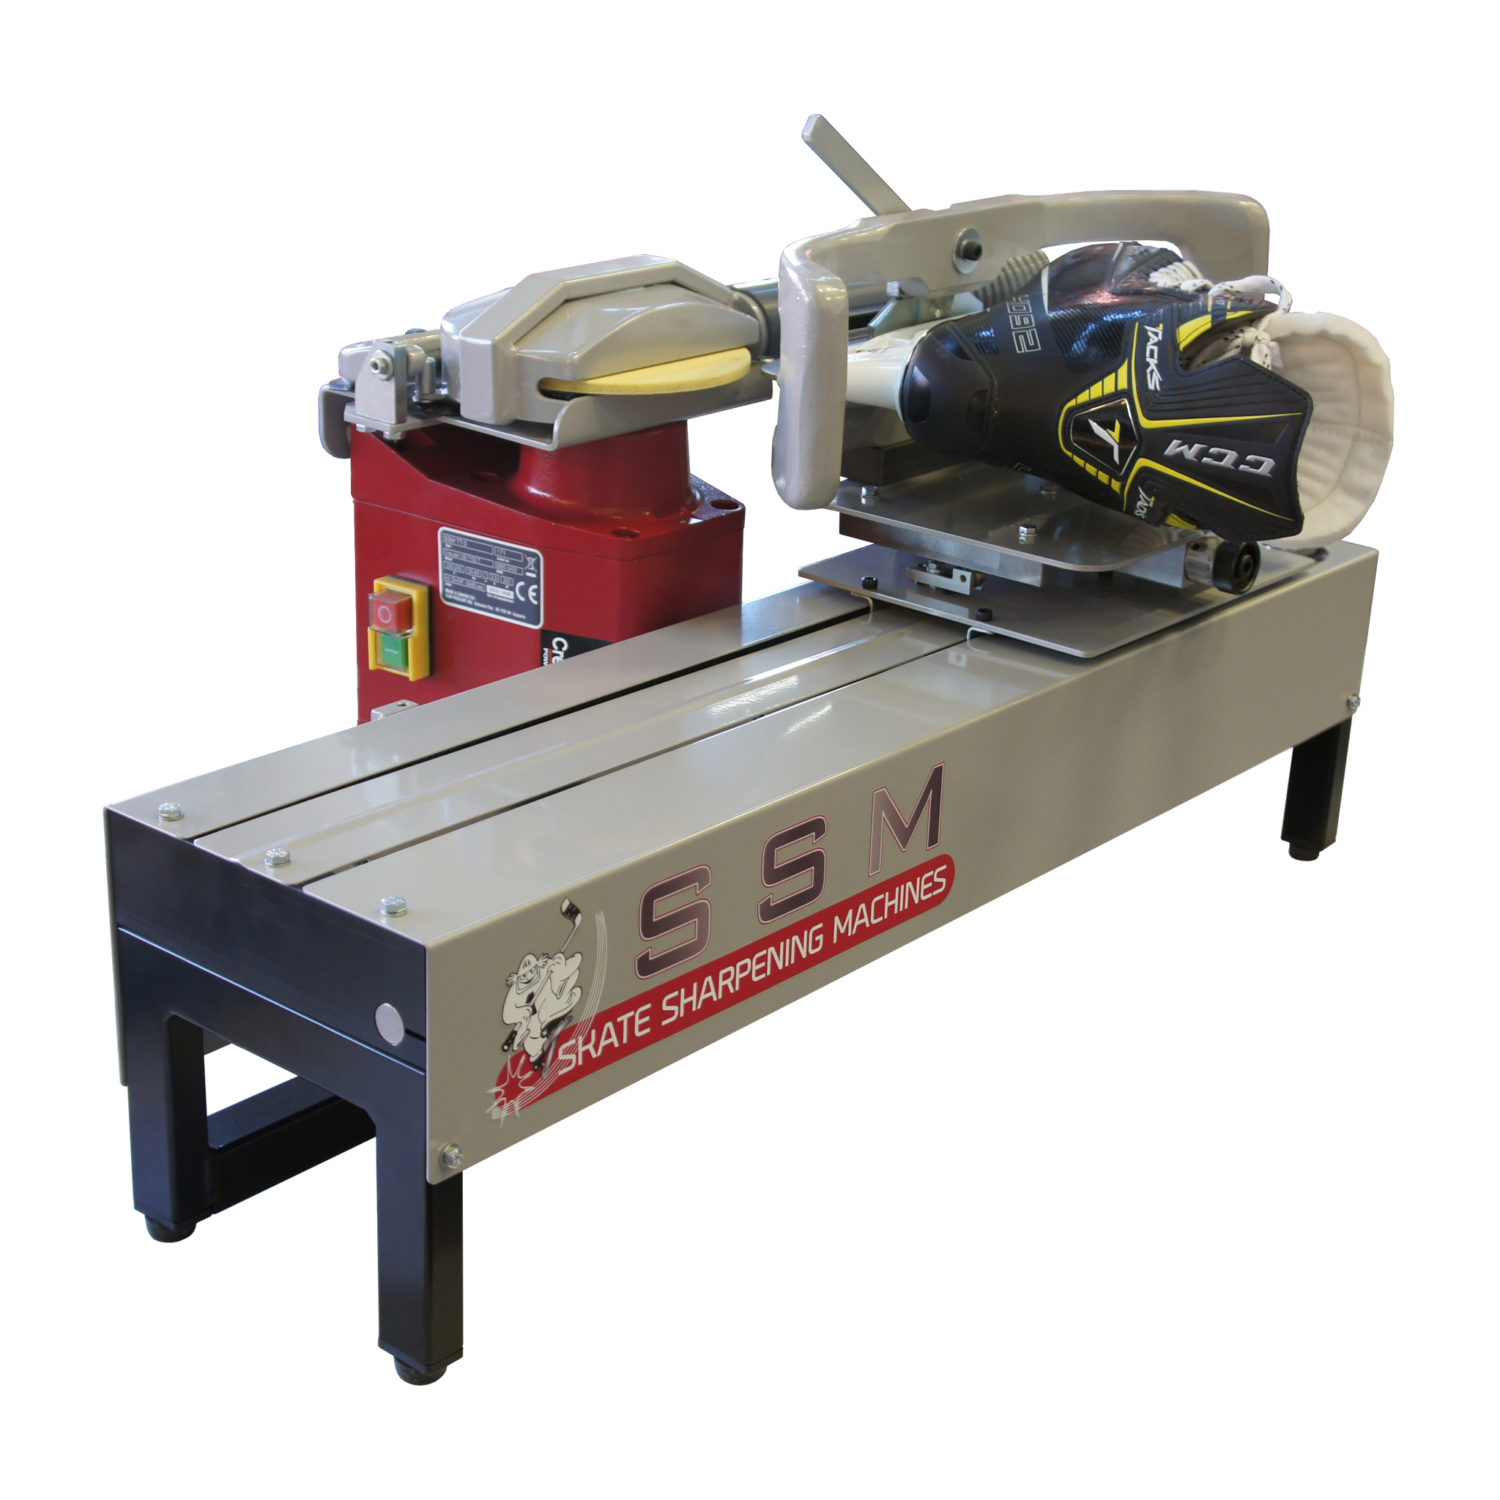 Skate sharpener SSM TT-3 with skate